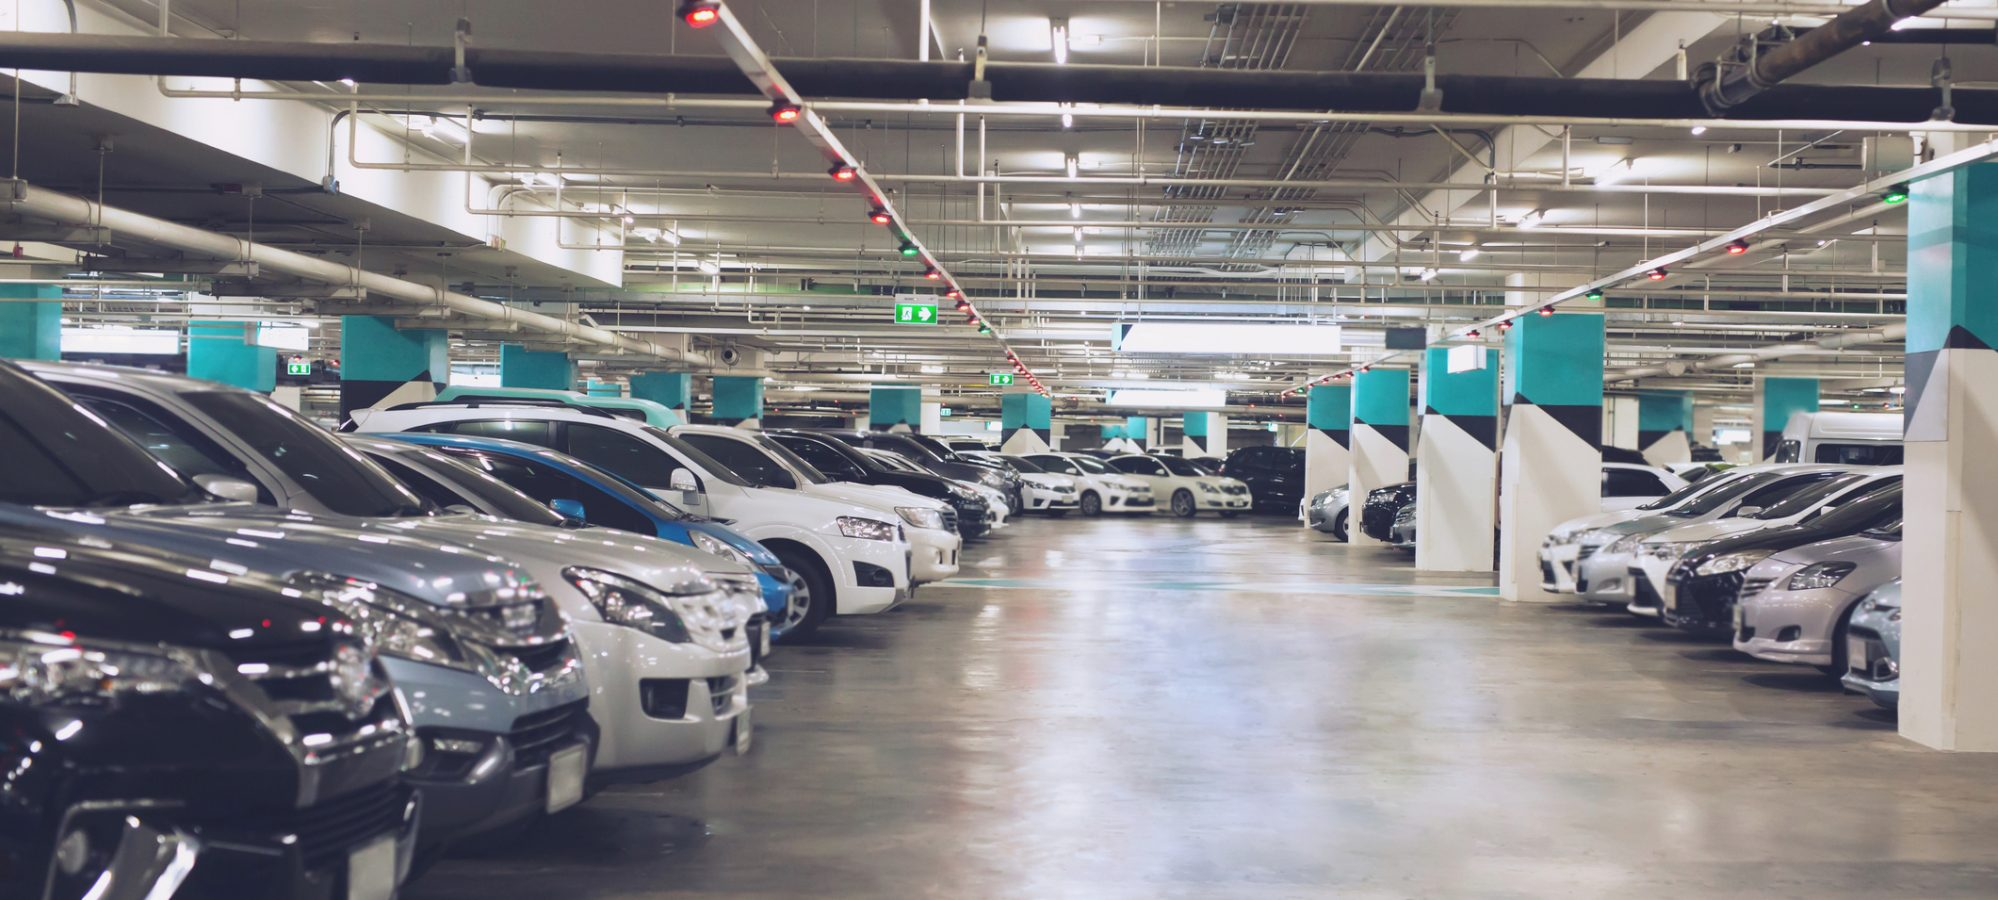 Image of cars in parking garage